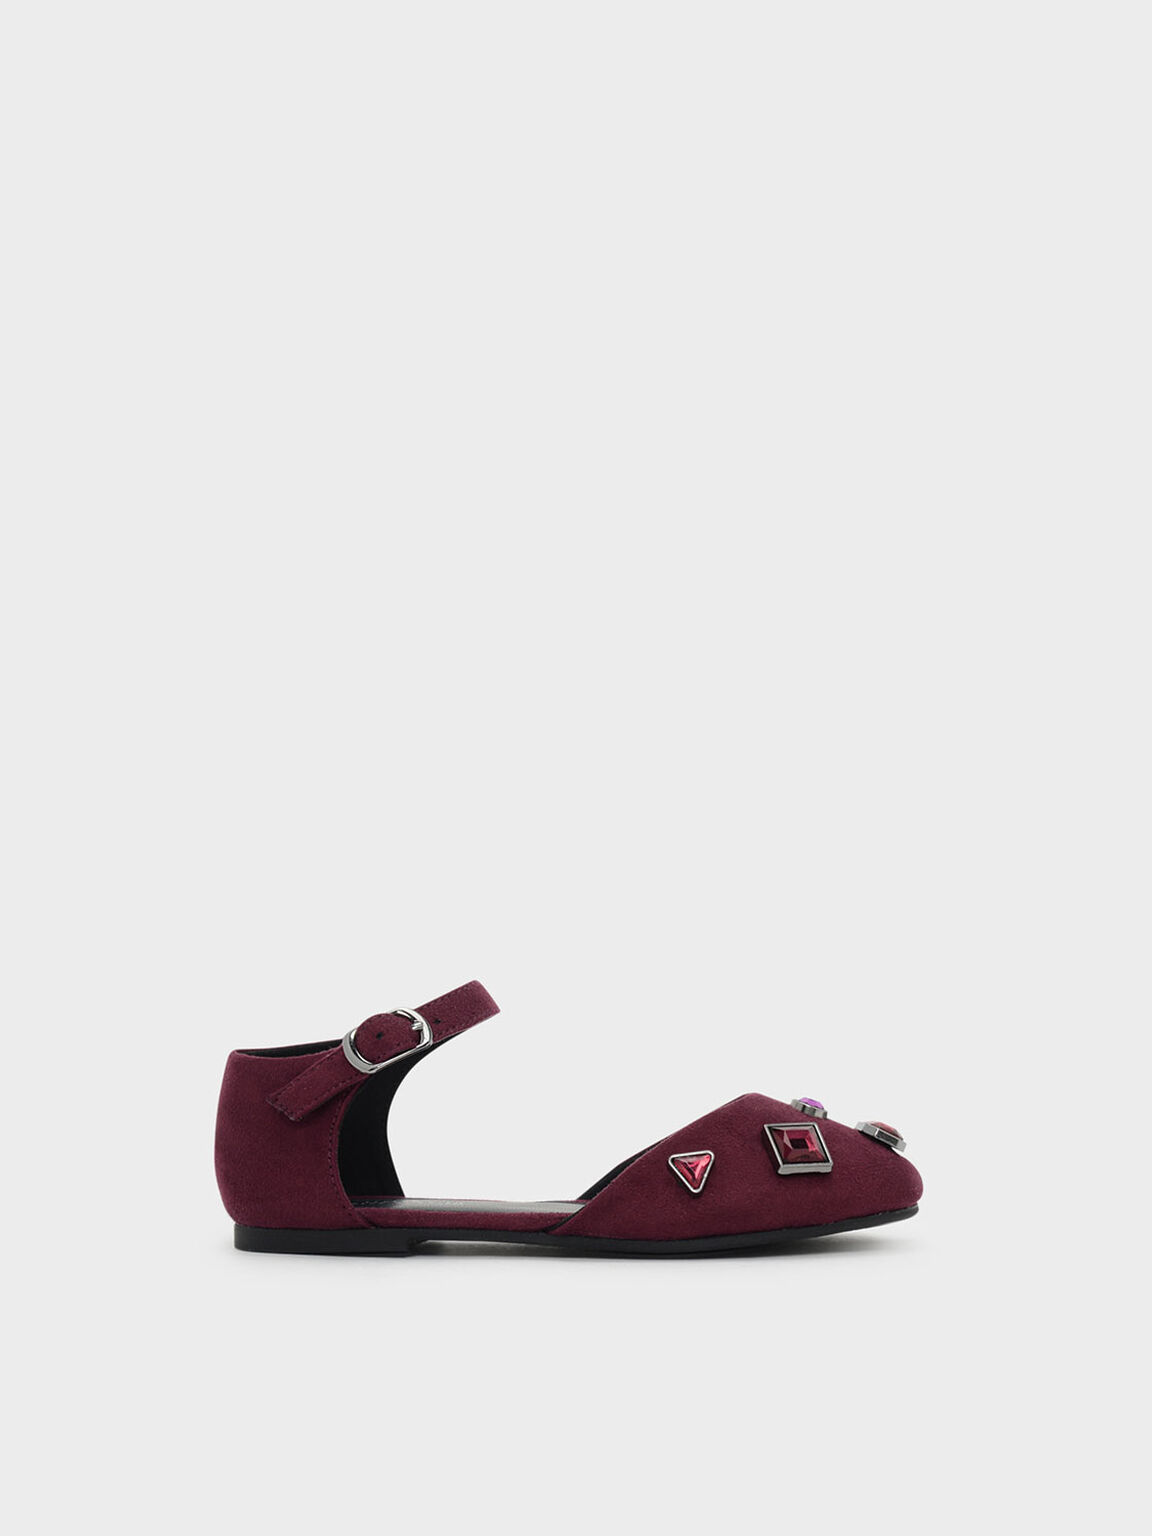 Kids Embellished Flats, Burgundy, hi-res